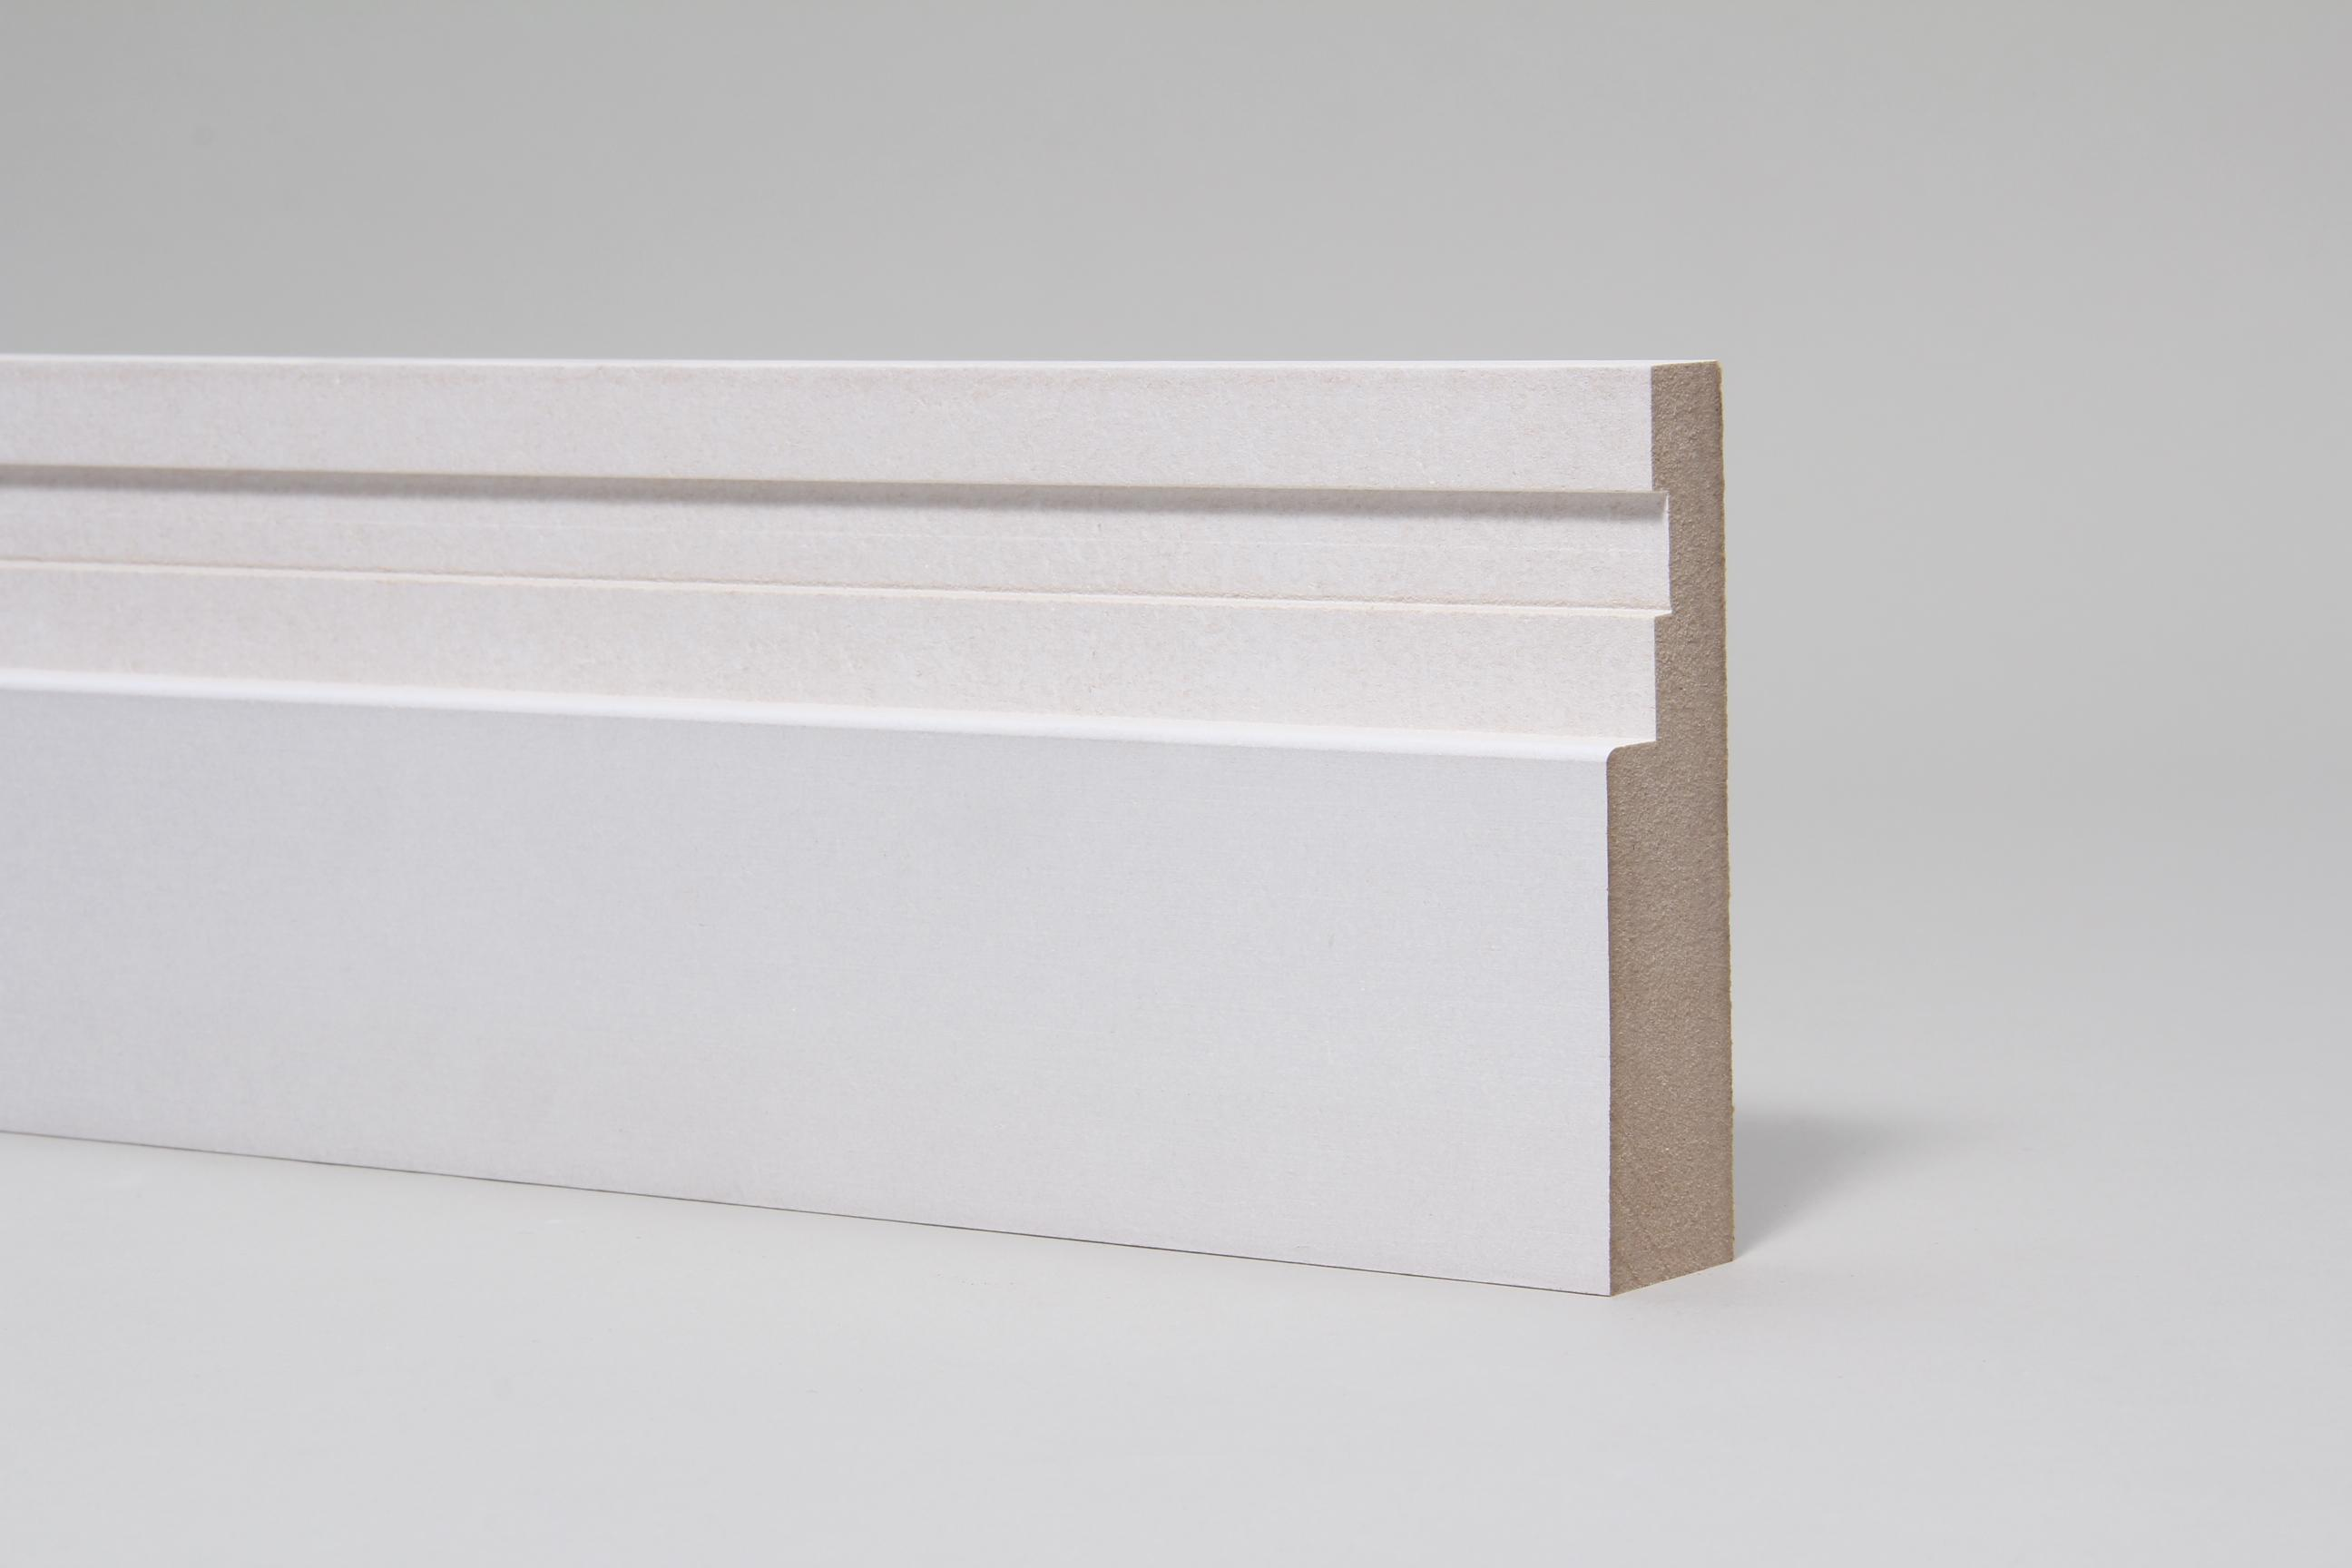 Fire Door Casing Set 30mm x 115mm Primed